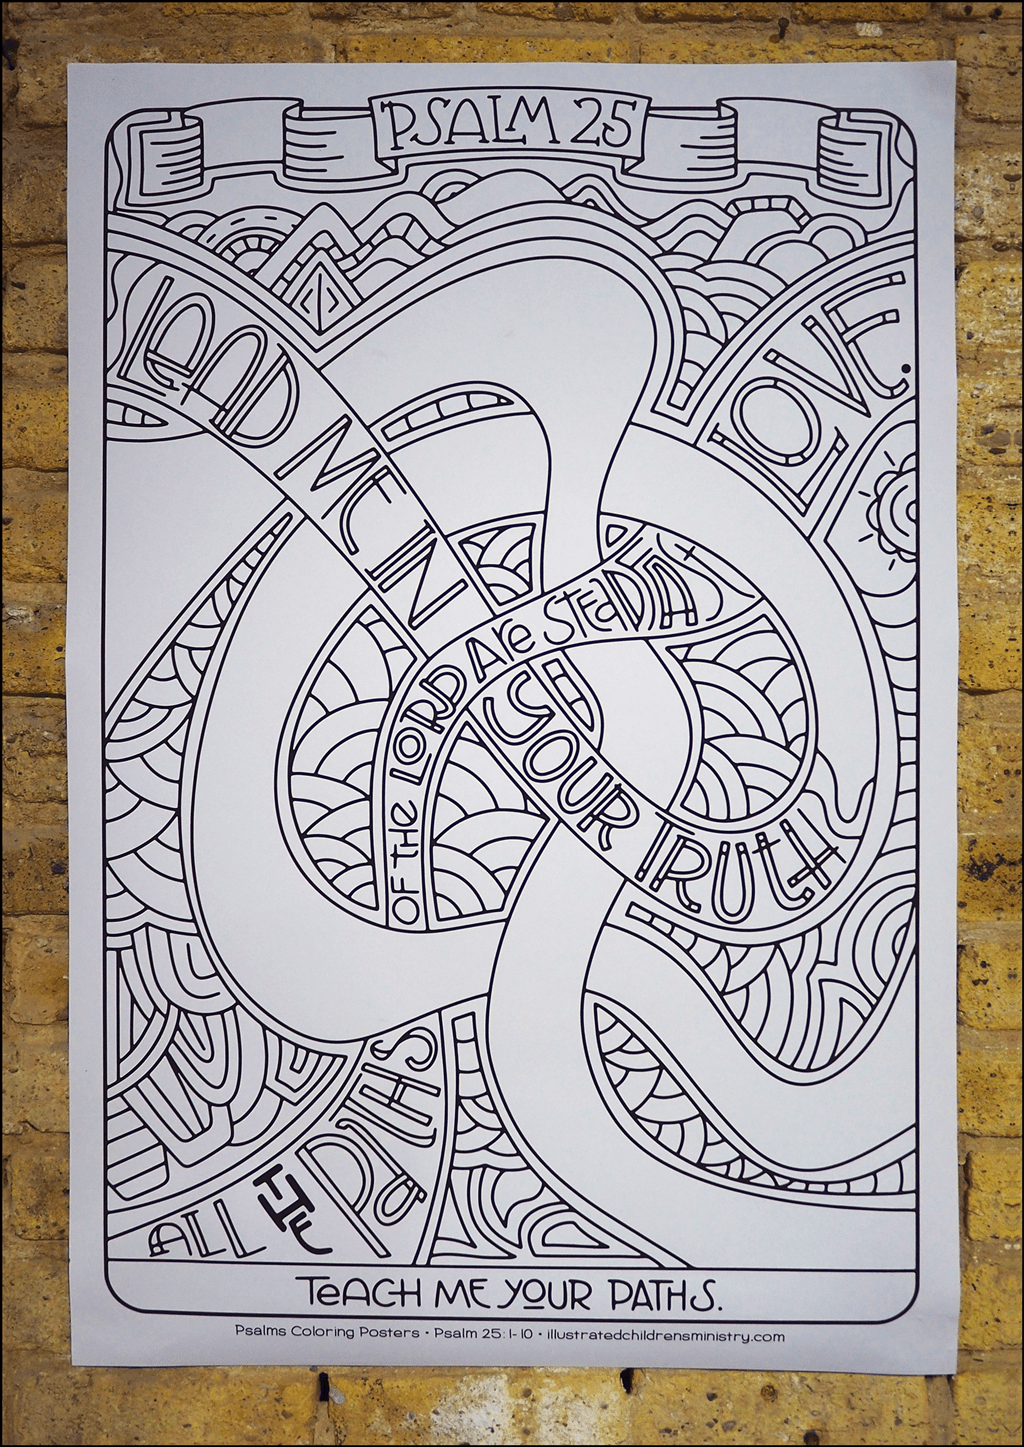 Psalms coloring poster - Lead me in your truth